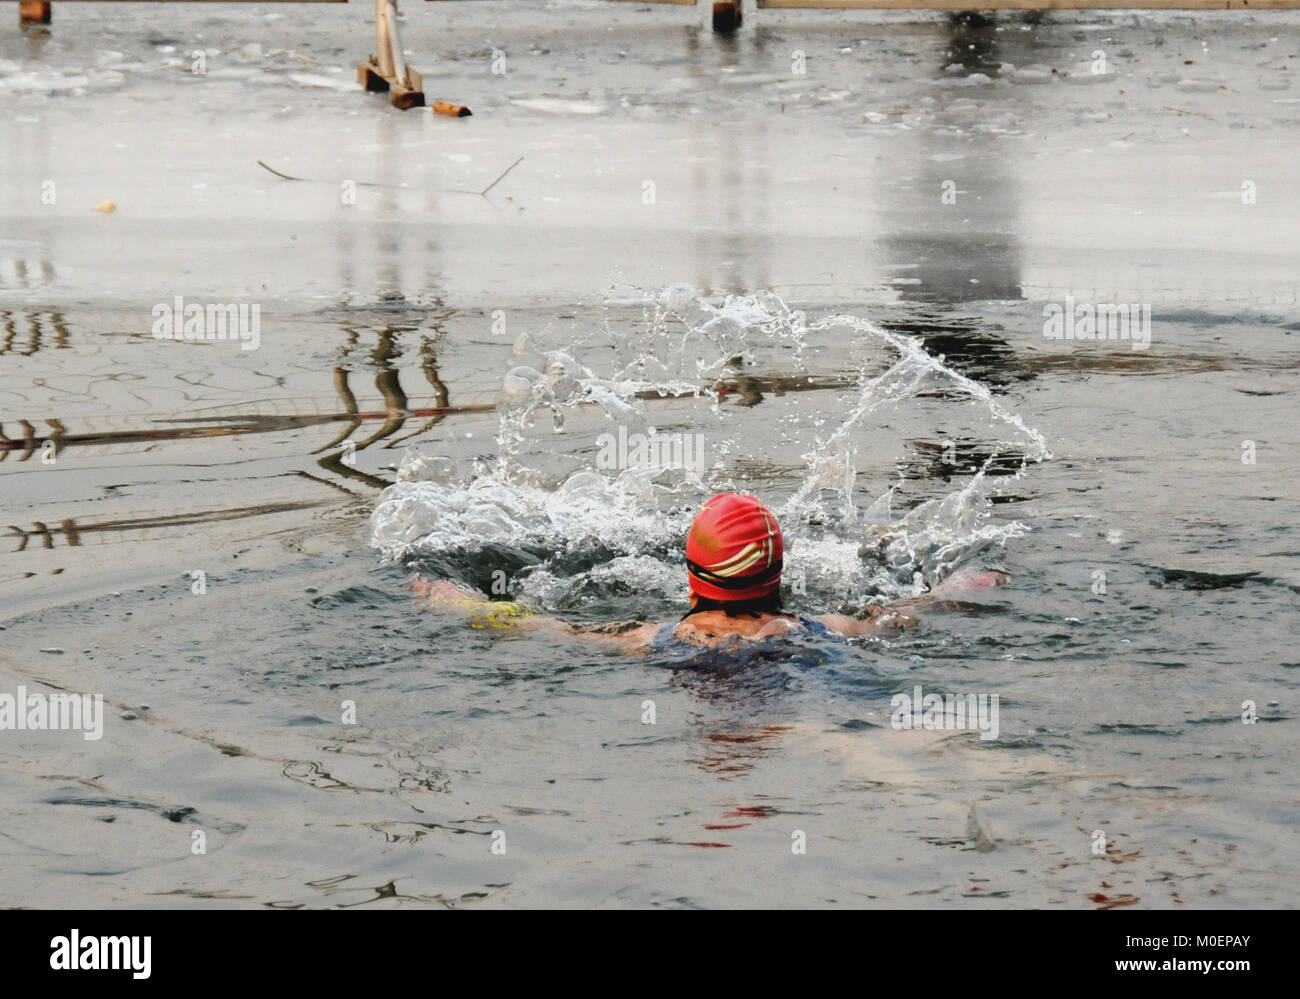 Beijing, Beijing, China. 21st Jan, 2018. Beijing, CHINA-21st January 2018: Winter swimmers can be seen at Shichahai - Stock Image